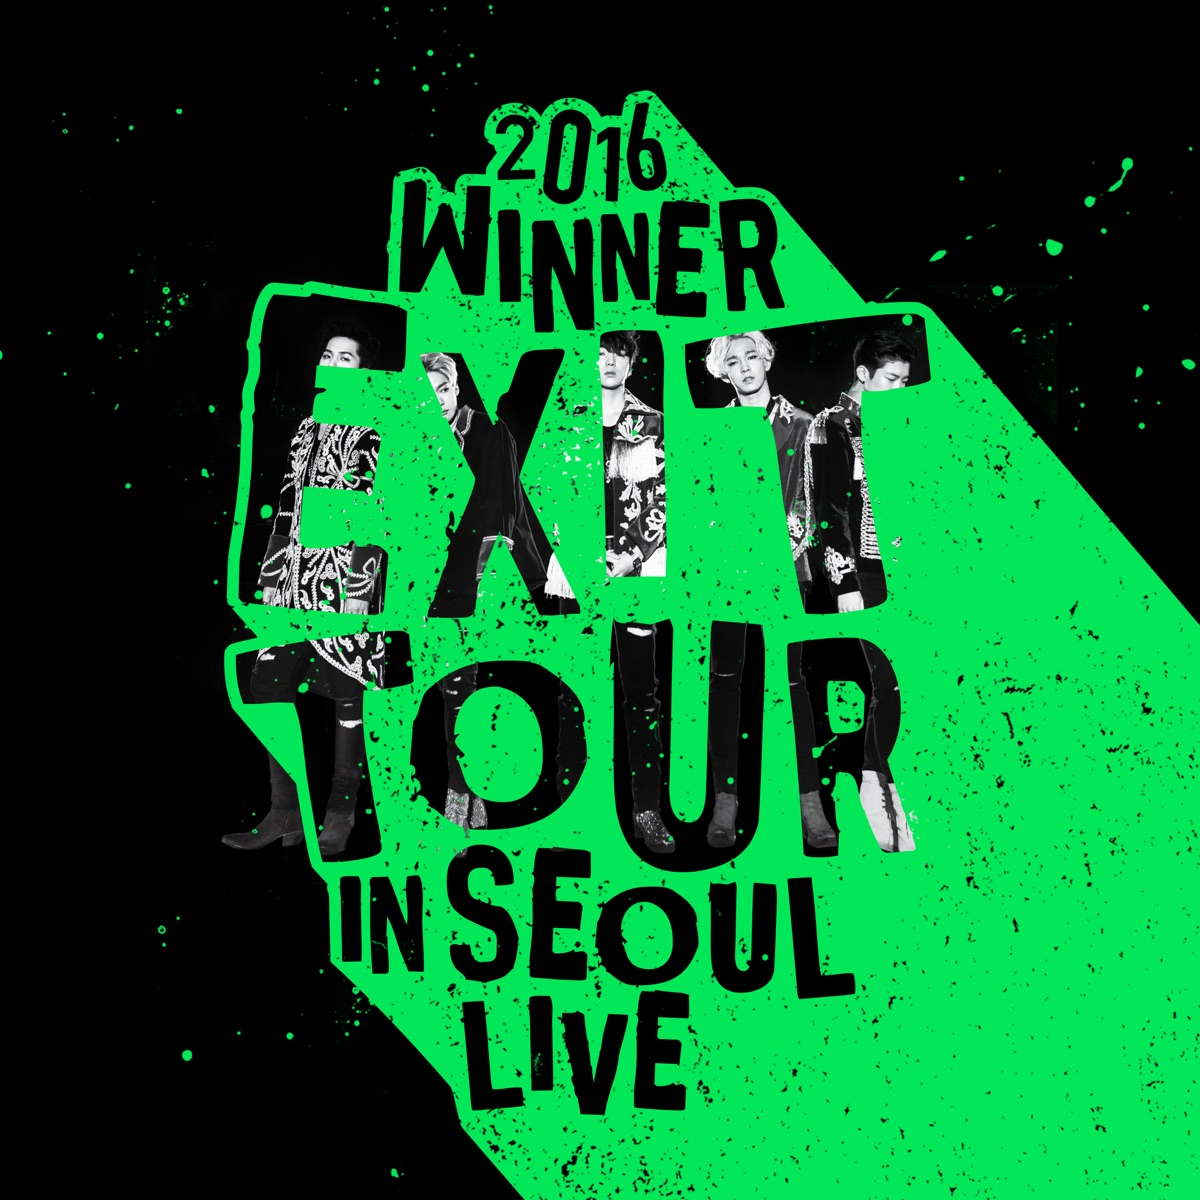 2016 WINNER EXIT TOUR IN SEOUL LIVE WINNER CD cover